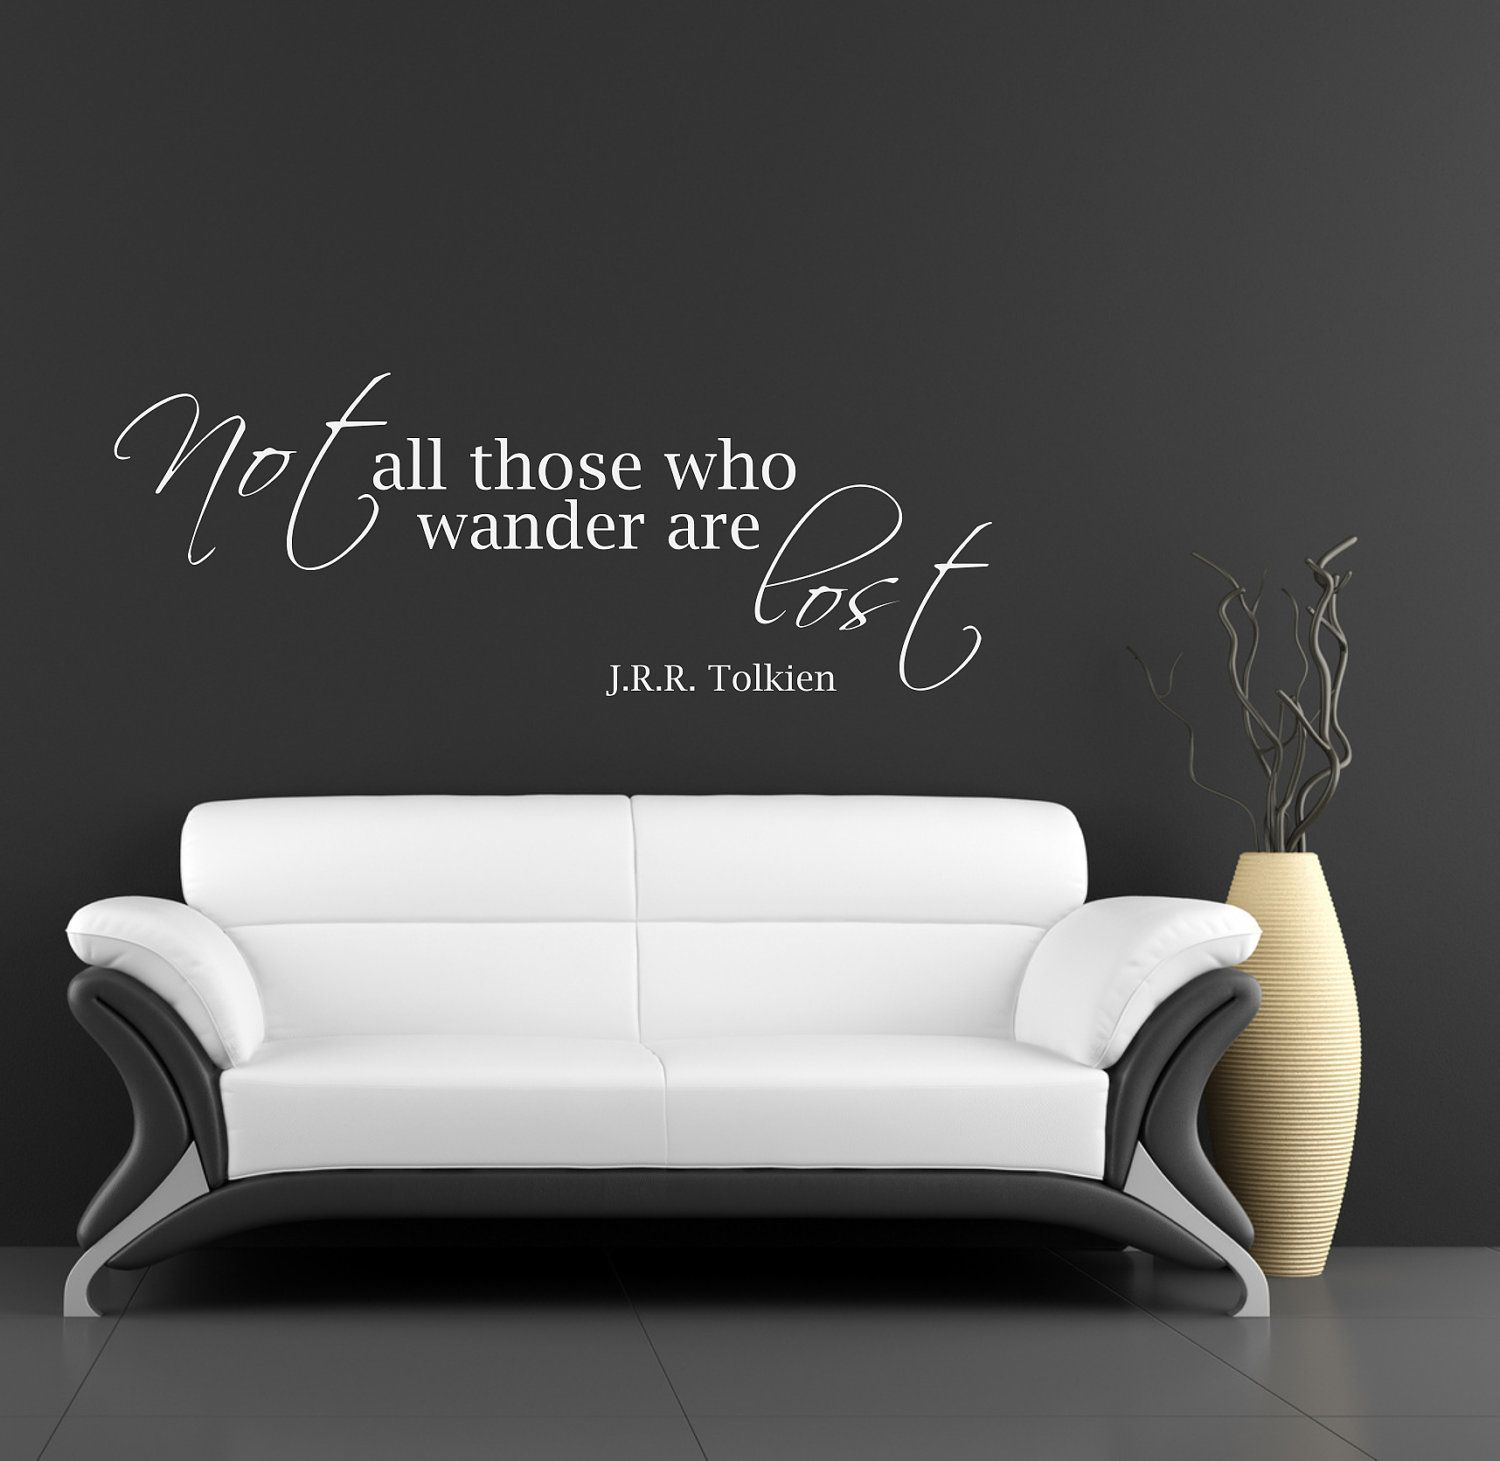 JRR Tolkien Quote Wall Decal Art Vinyl Lettering Sticker Not All Those Who  Wander Are Lost Part 58